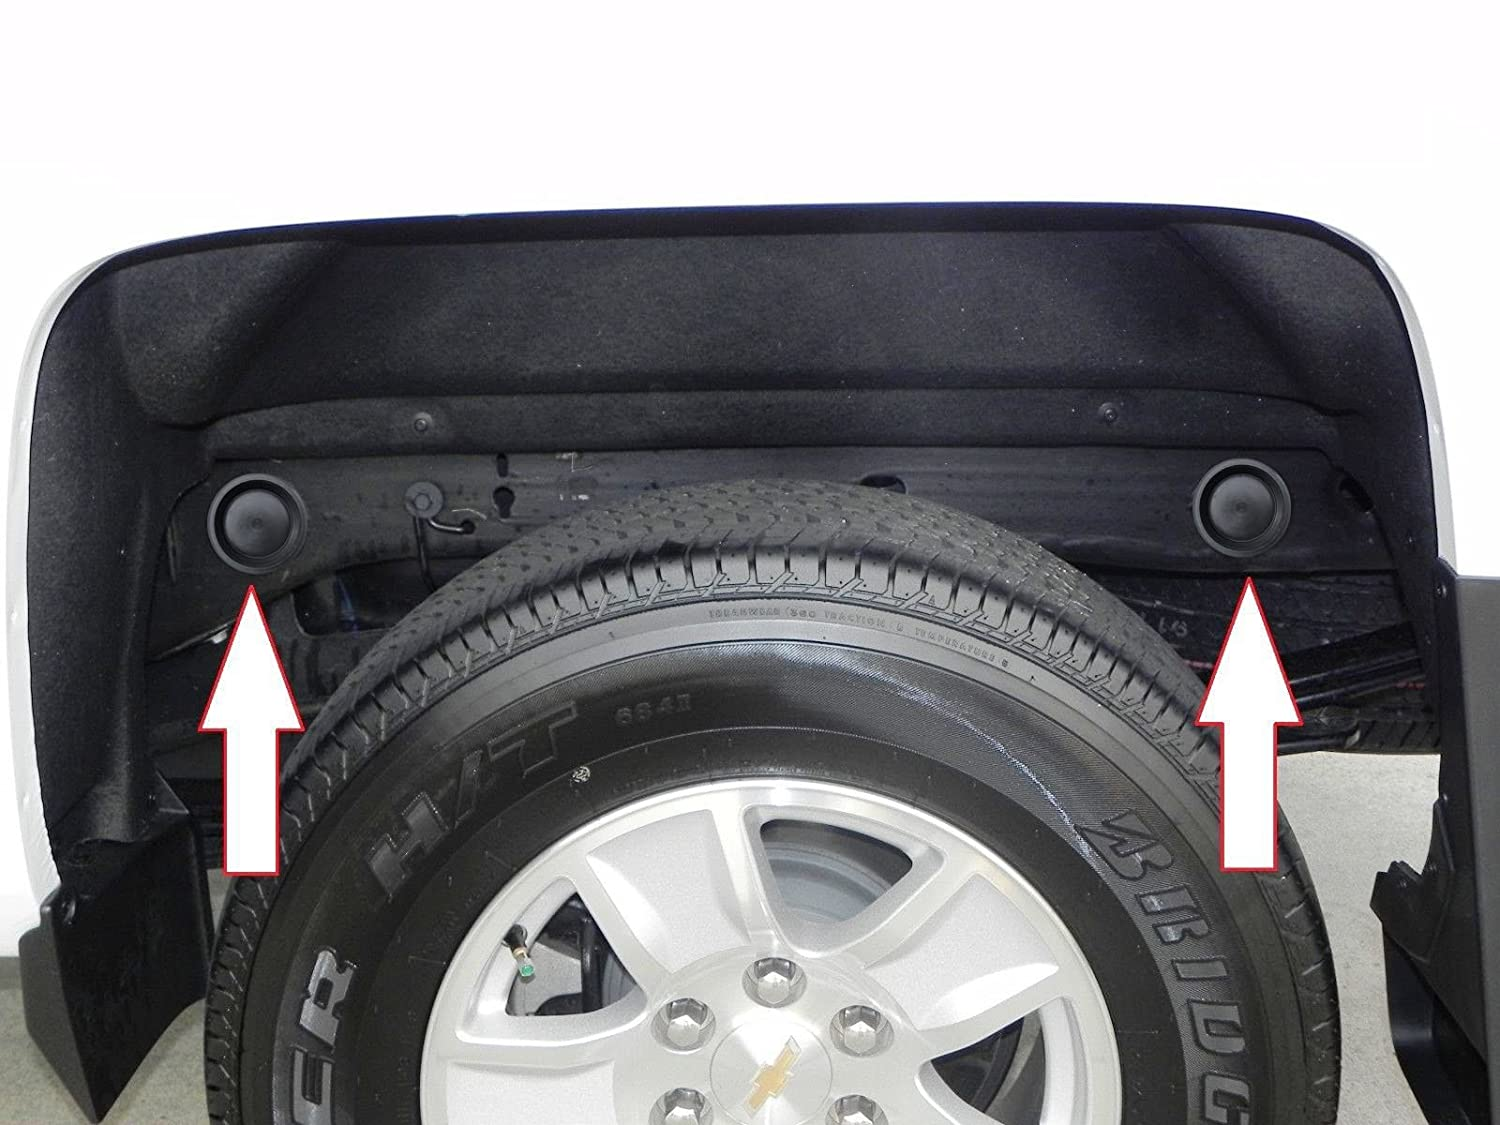 Silverado 2003 chevy silverado 1500 accessories : Amazon.com: Upper Bound Frame Tube Hole Plugs for Chevrolet ...